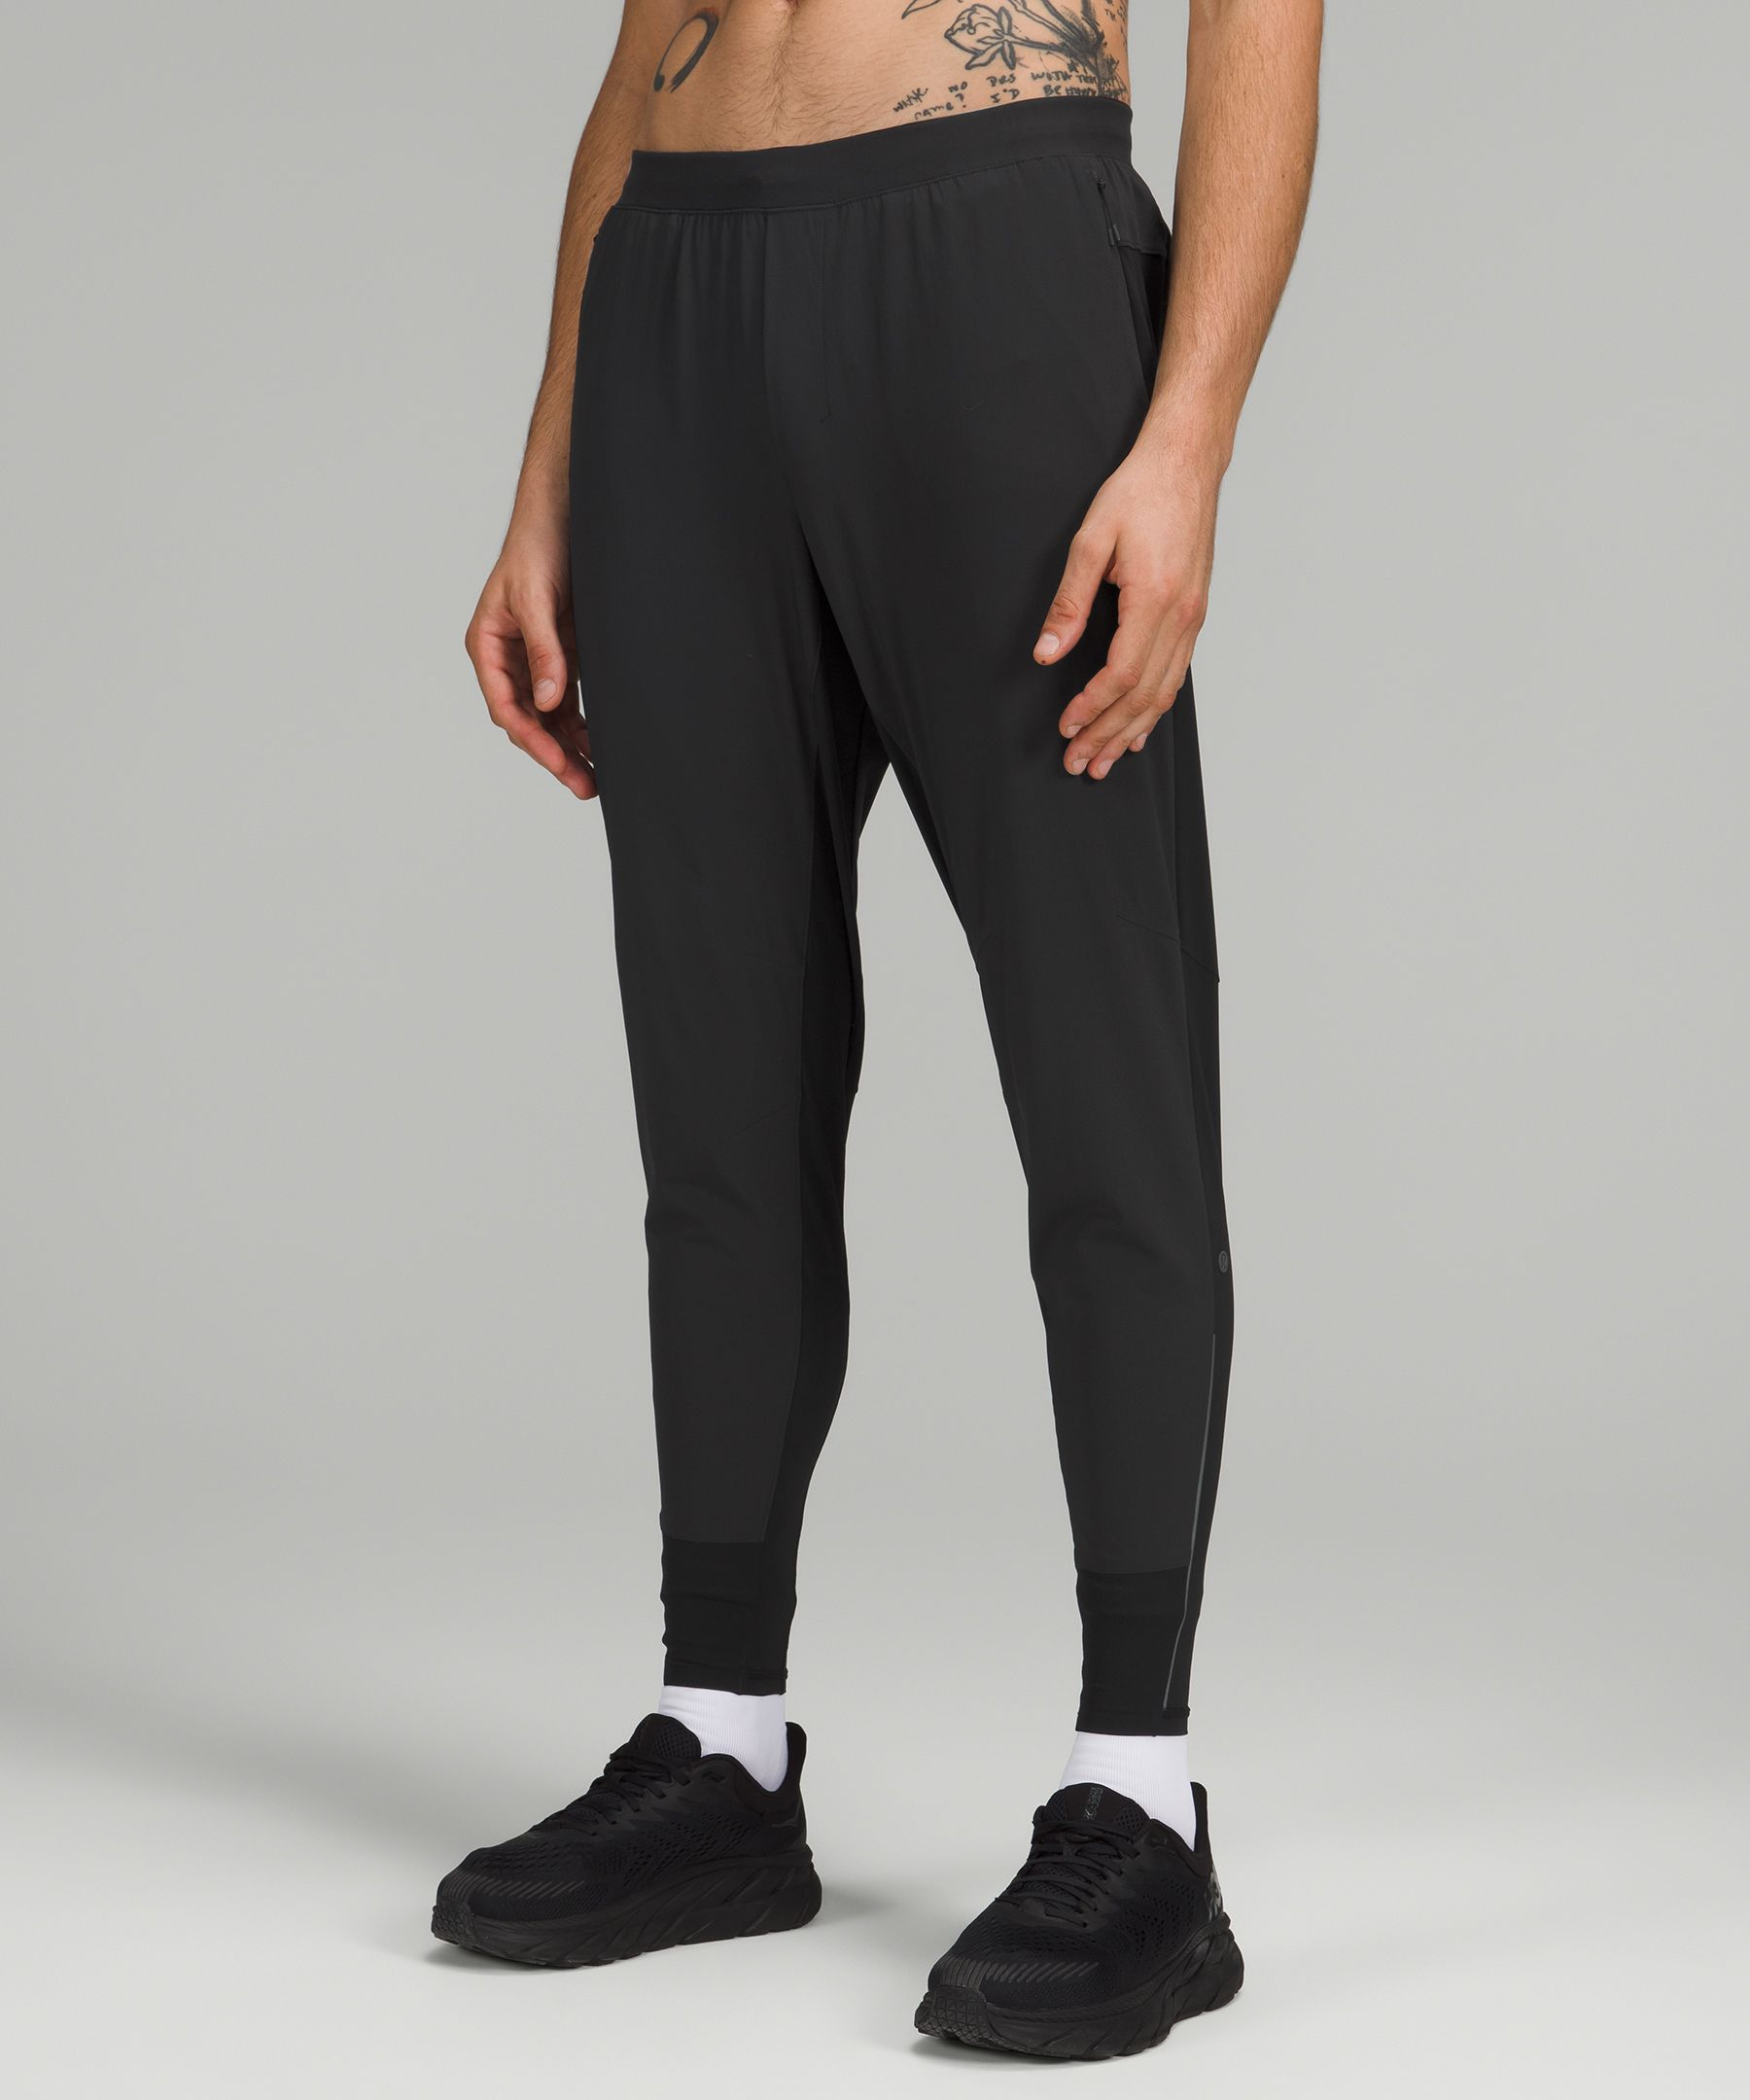 Cold weather giving you goosebumps Pull on these lightweight run pants. They\\\'re cut to stay out of your way, without restricting your quads.